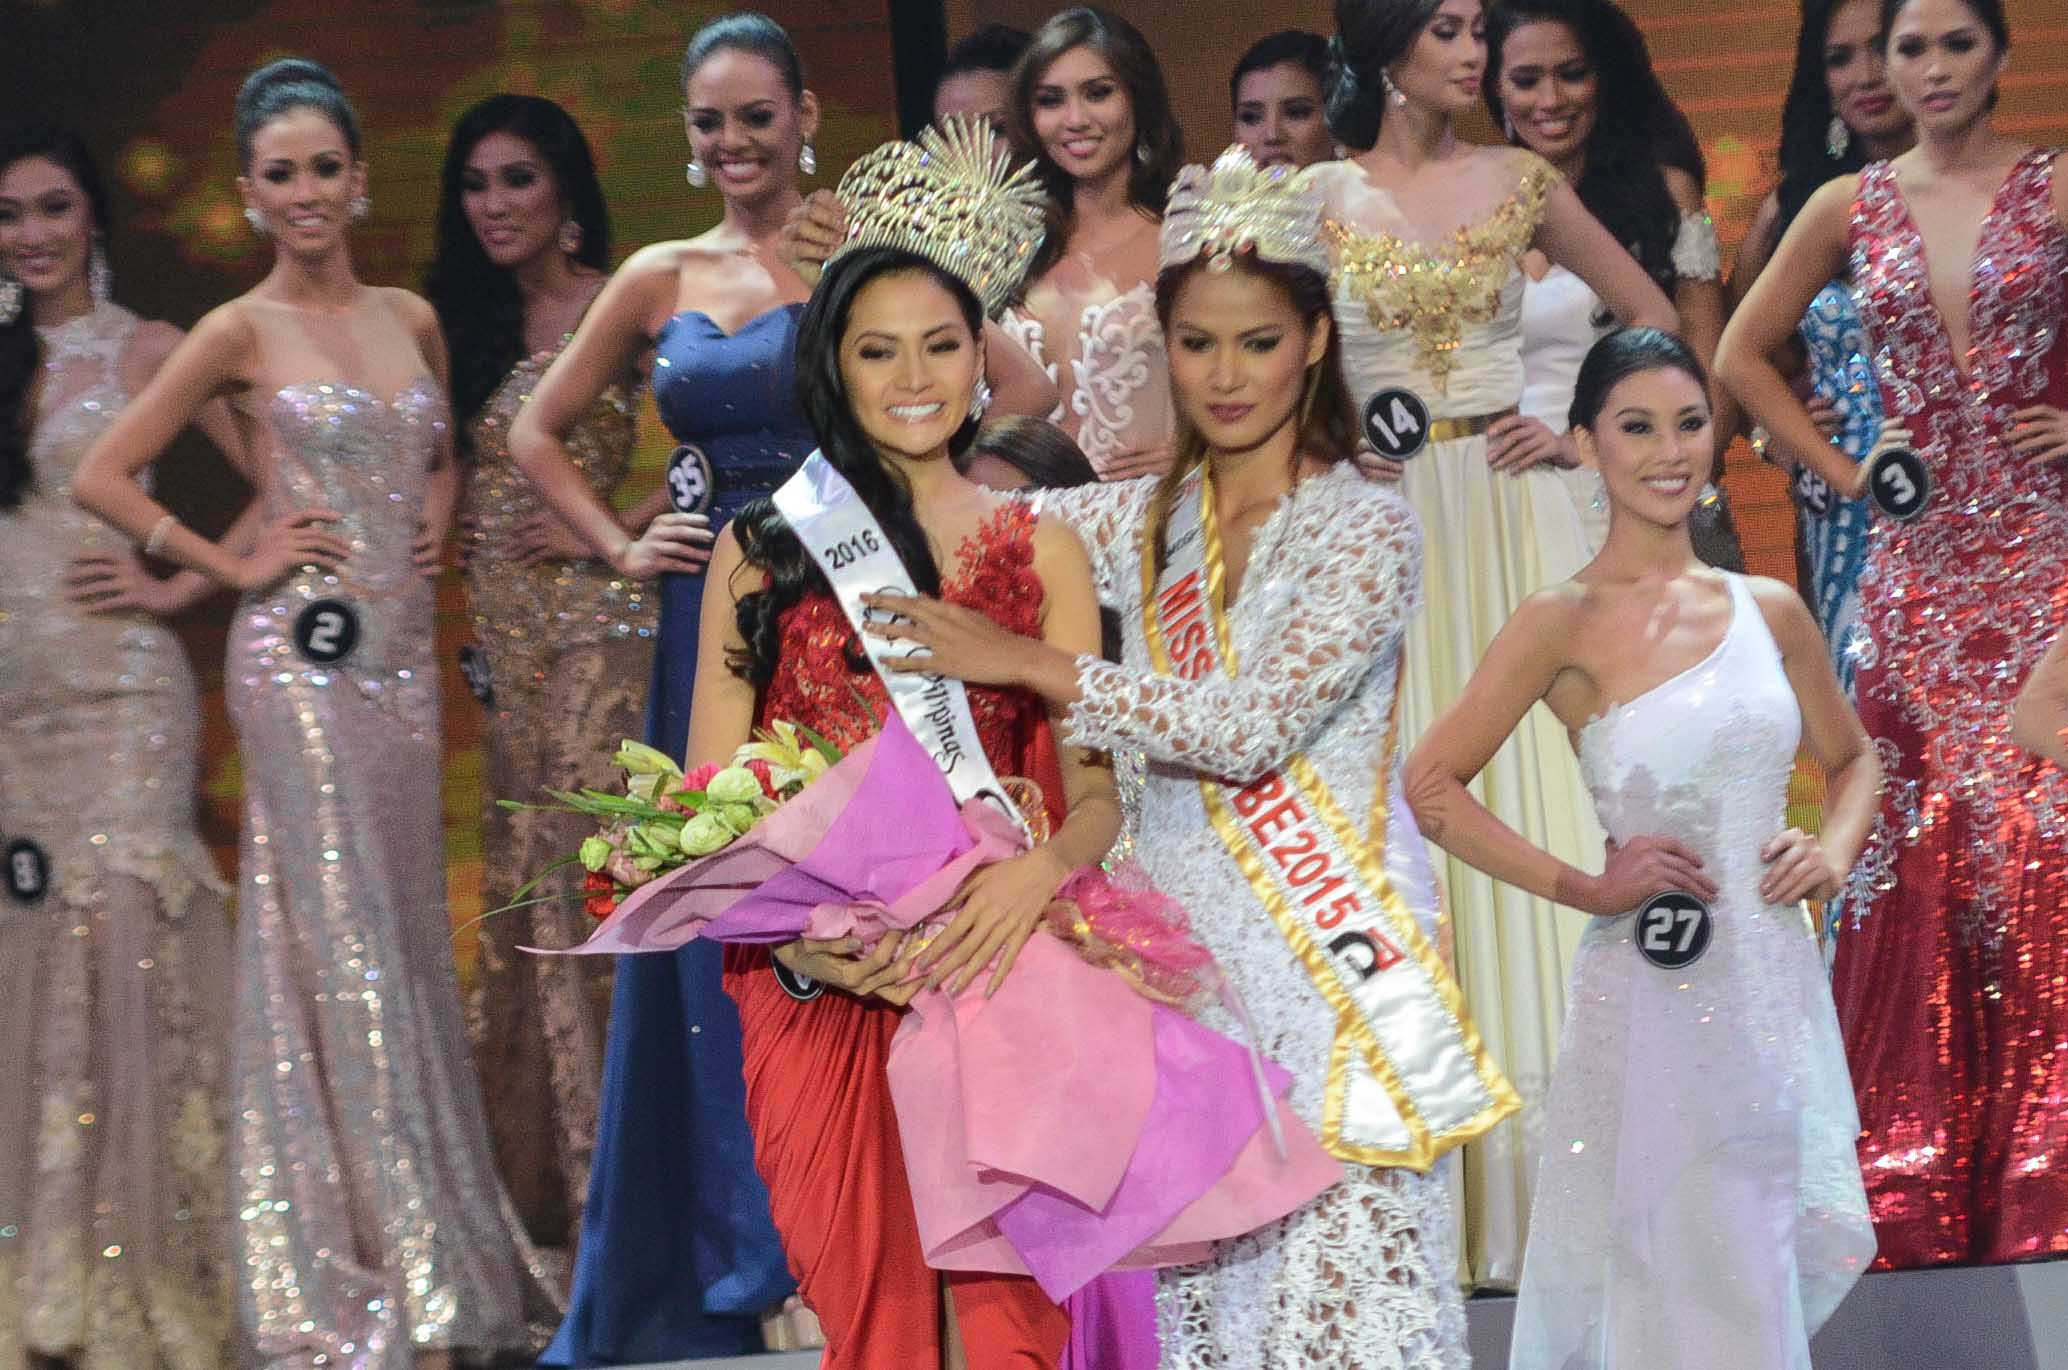 Nichole Manalo is hoping for a back-to-back crown in Miss Globe. Photo by Alecs Ongcal/Rappler